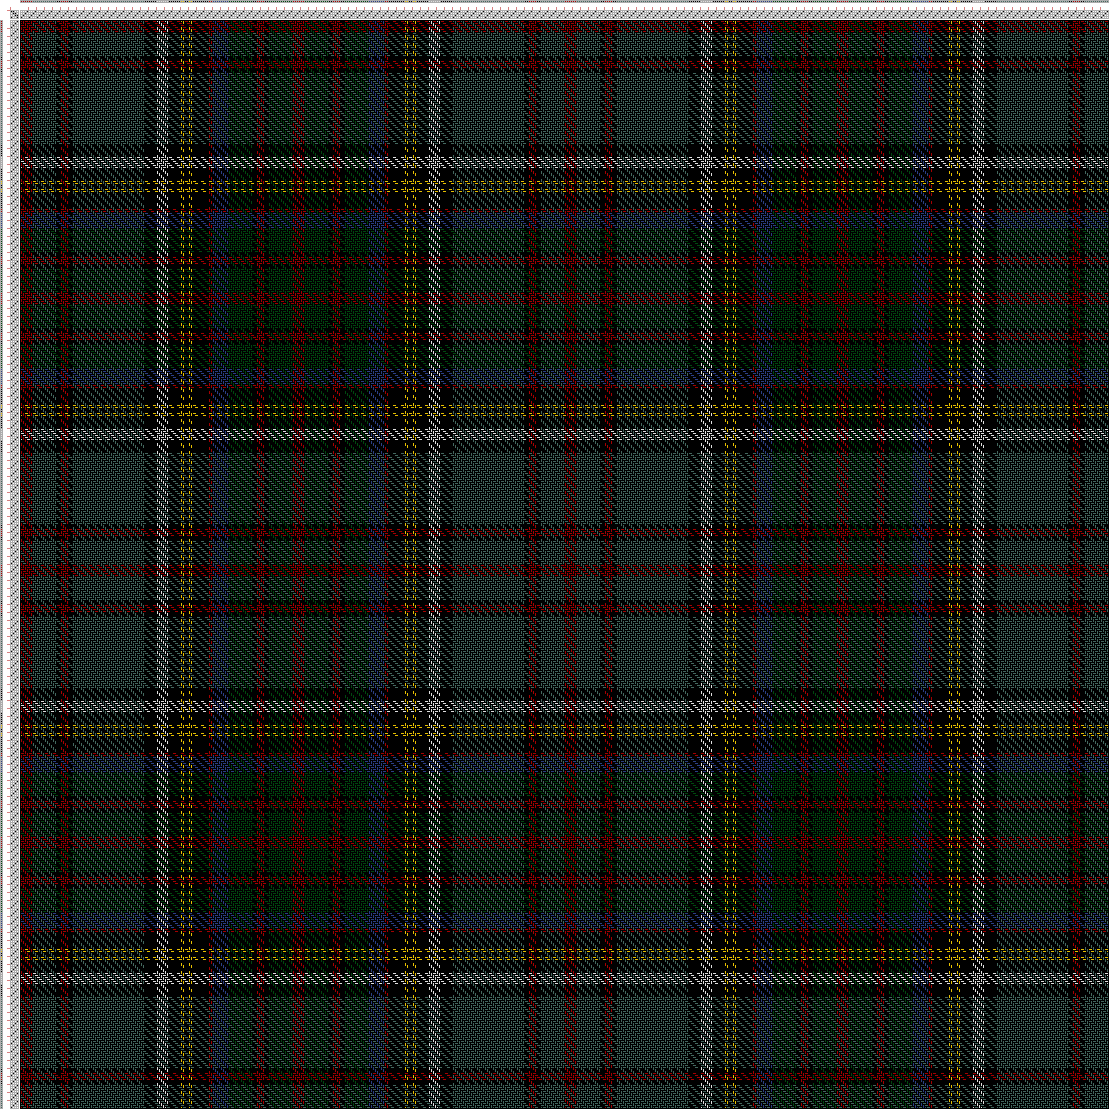 draft image: Anderson P (R6, AZ12, BK2, R4, BK2, AZ36, BK6, W6, BK6, Y2, BK2, Y2, BK8, R2, B8, G12, BK2, R4, BK2, G12, R6), Scottish and Other Tartans Collection, 4S, 4T